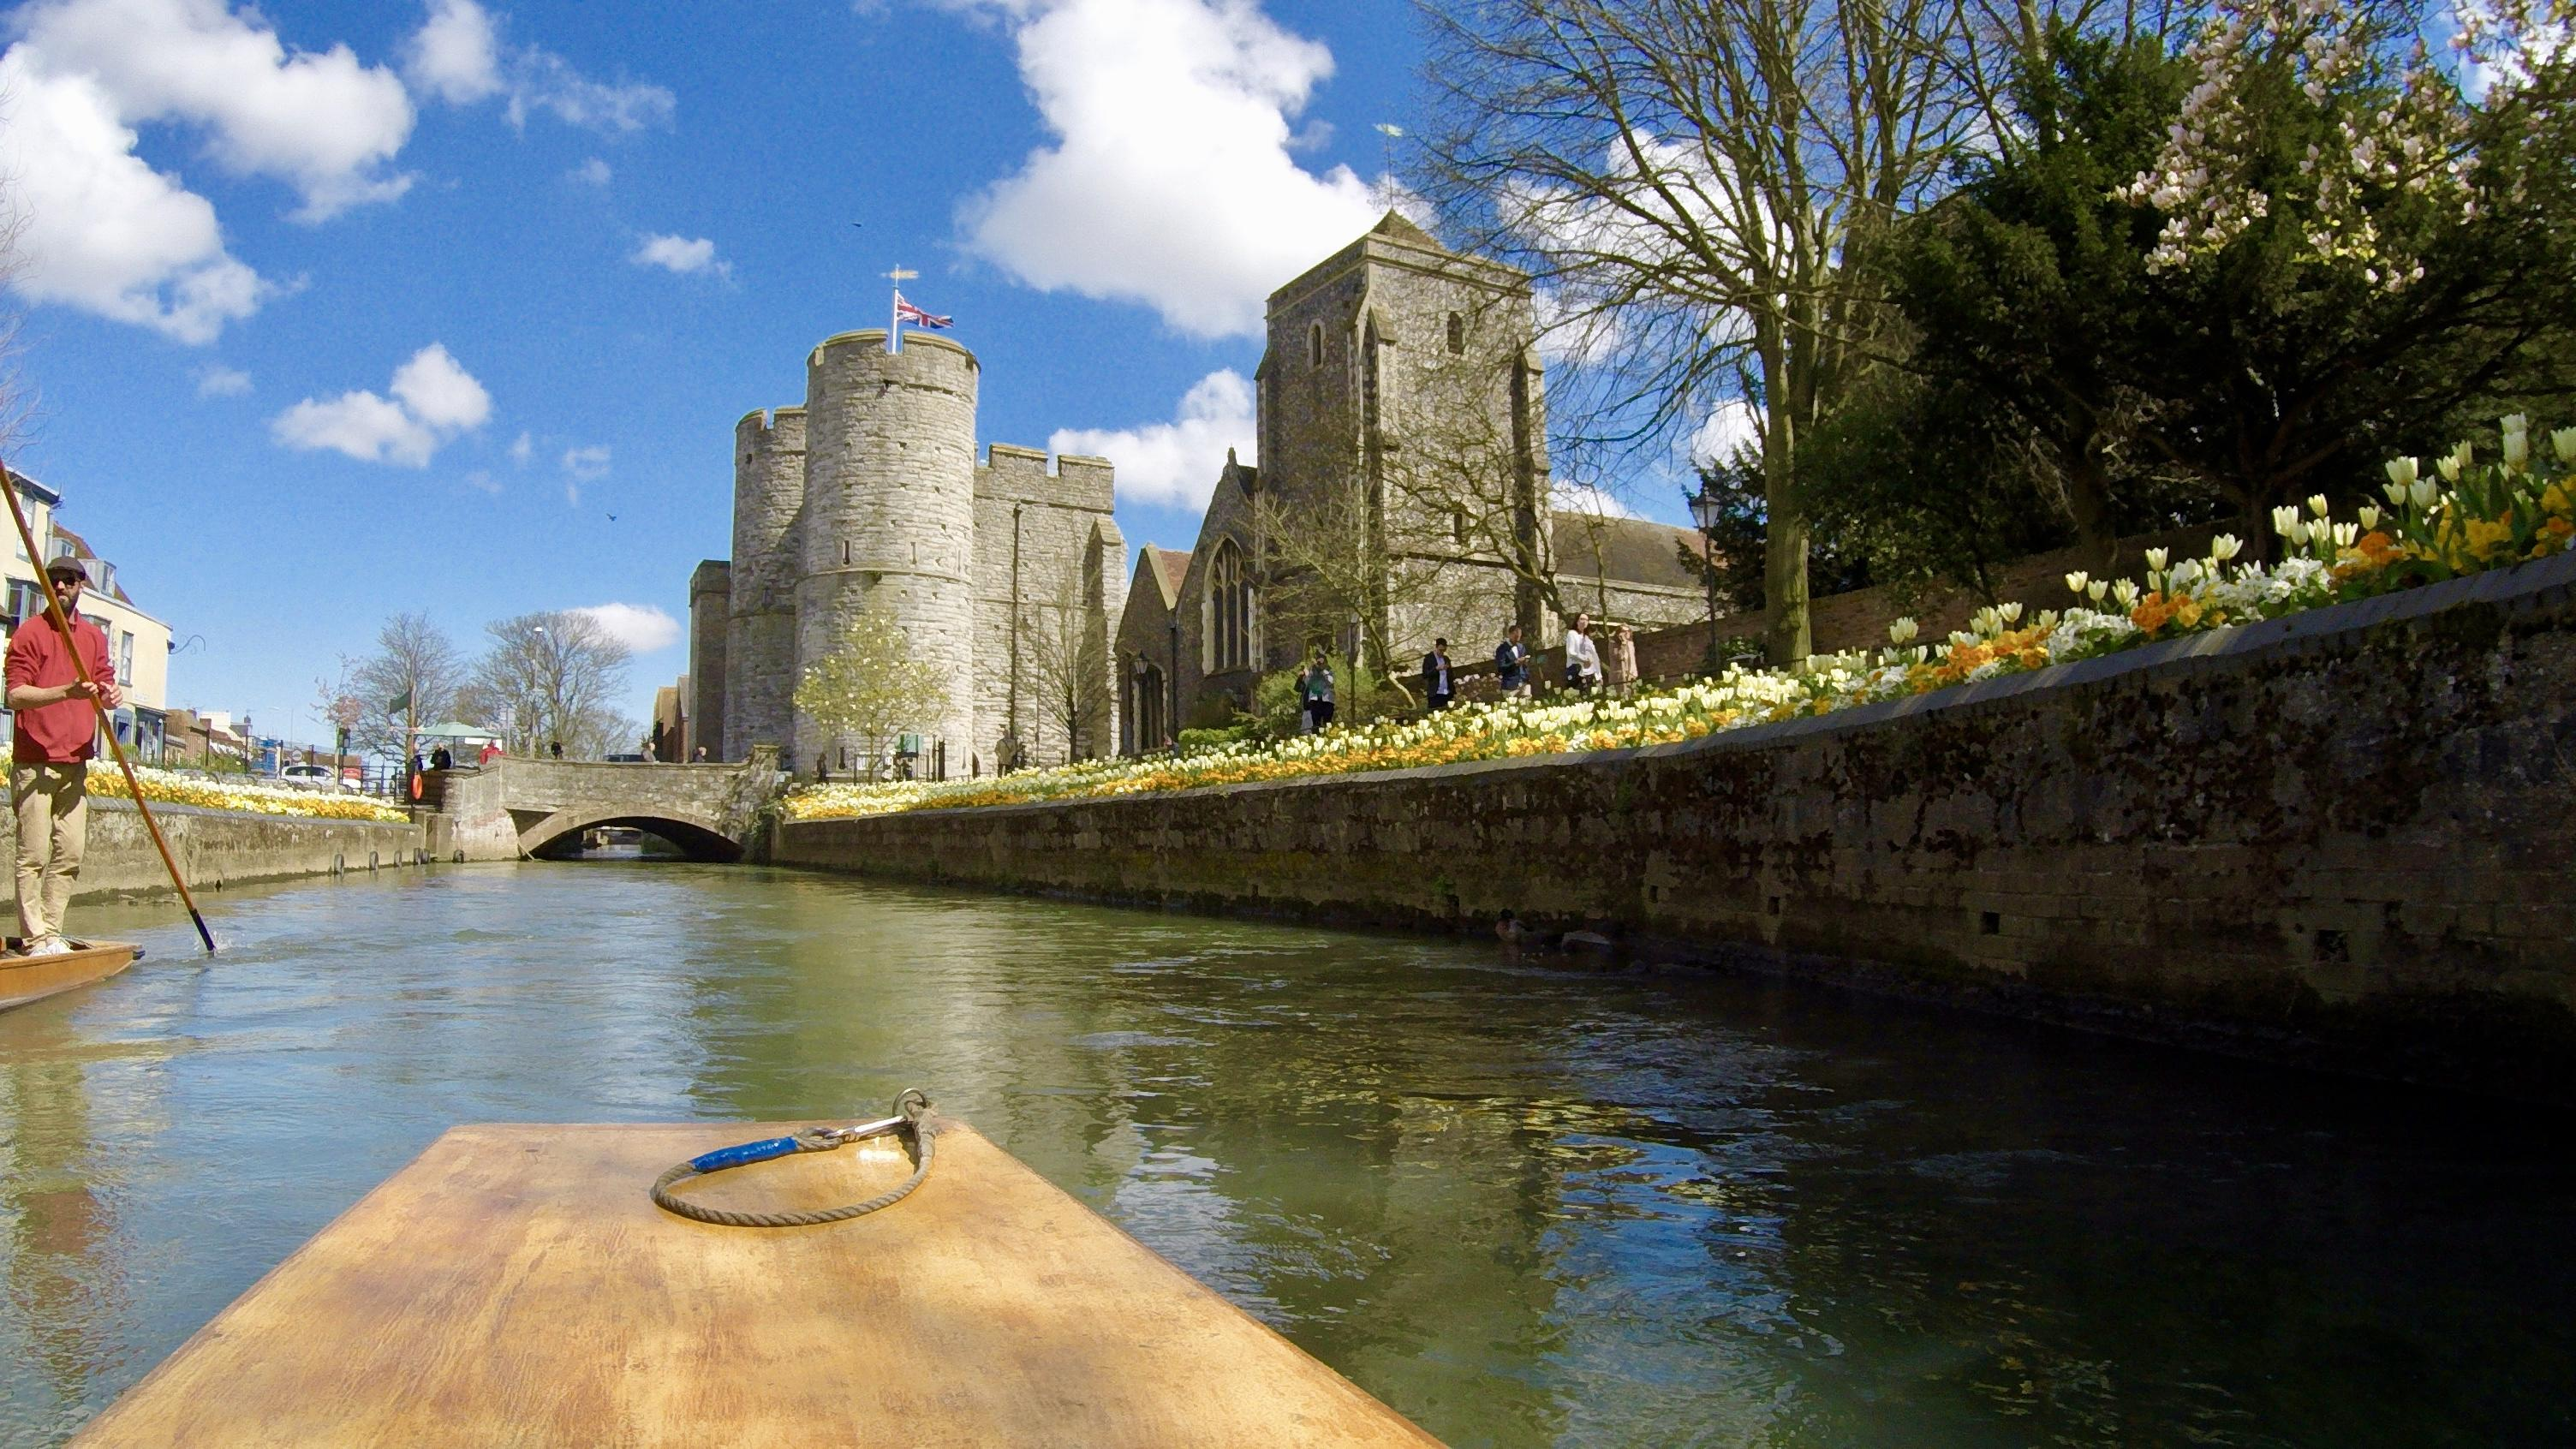 The stour river in Canterbury Kent